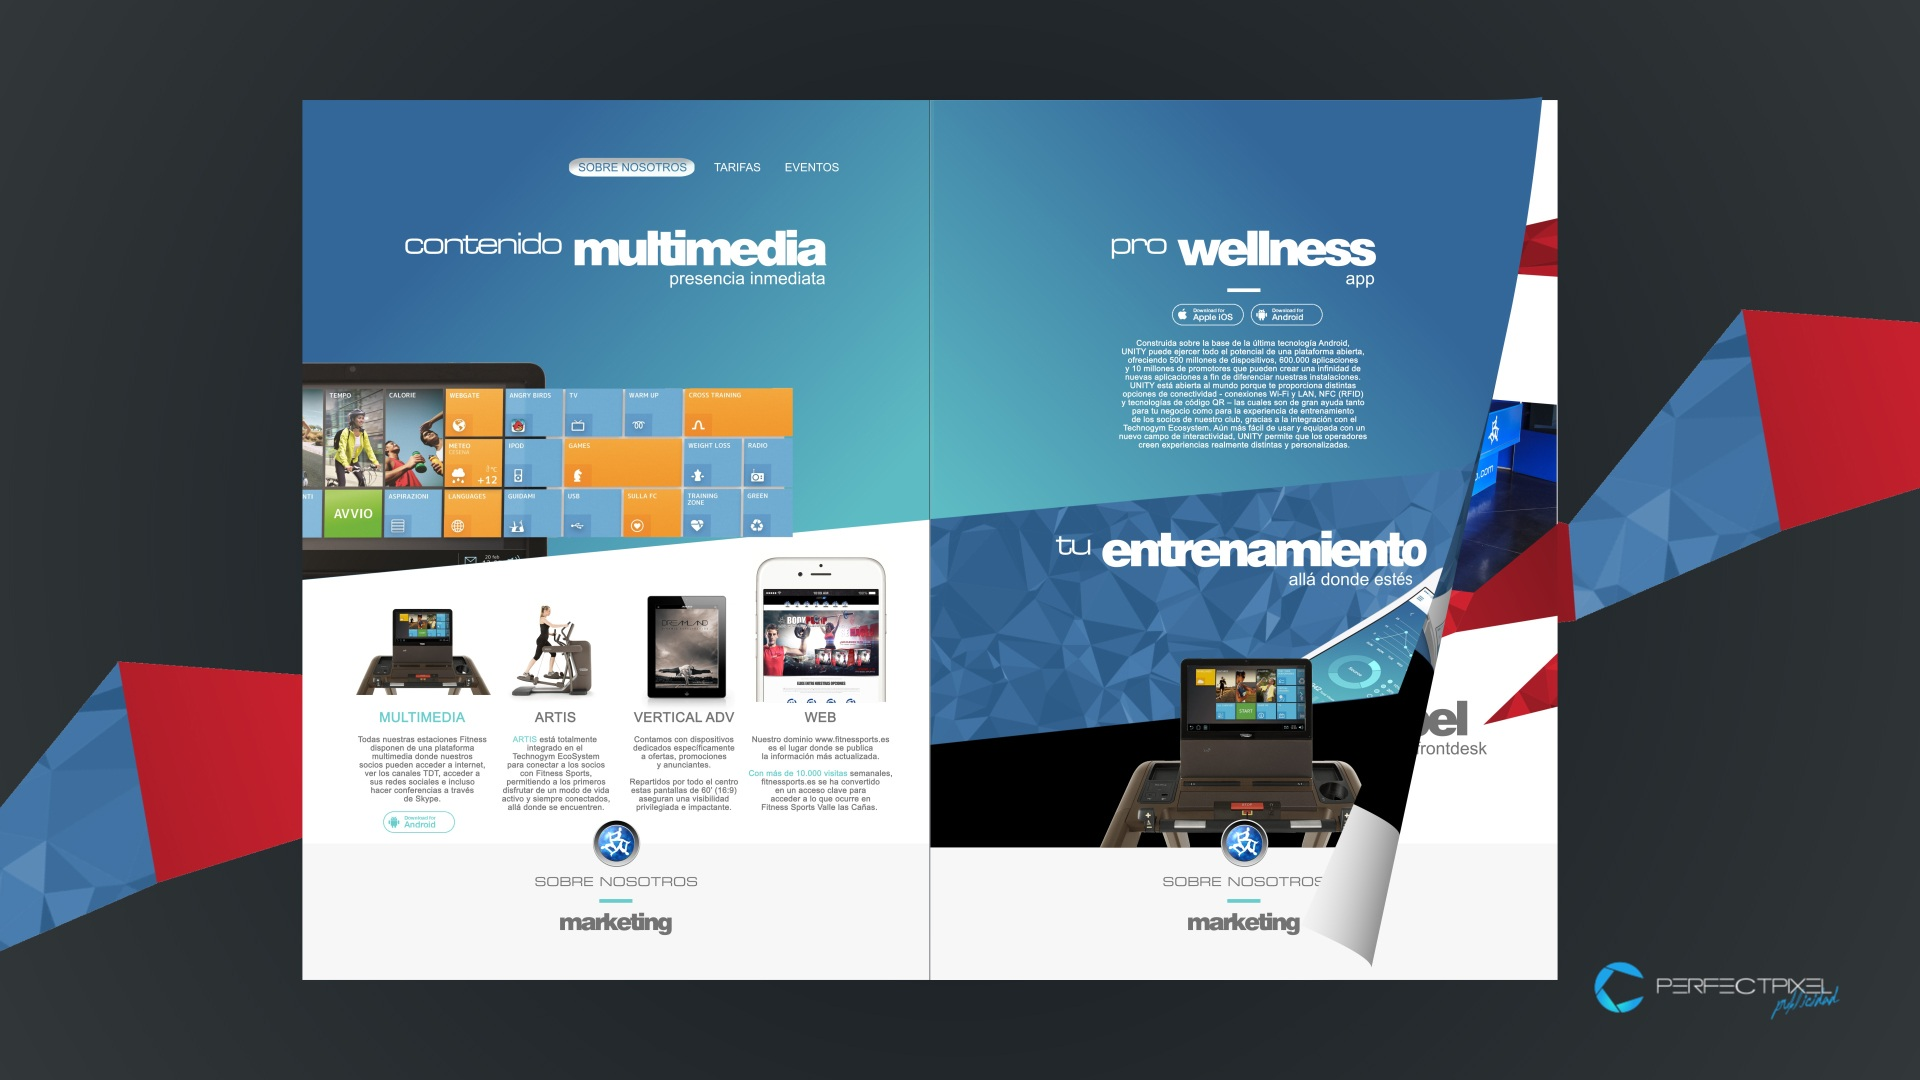 https://www.perfectpixel.es/wp-content/uploads/2015/07/Corporate-Brochure-Design-by-PerfectPixel-Publicidad.jpg